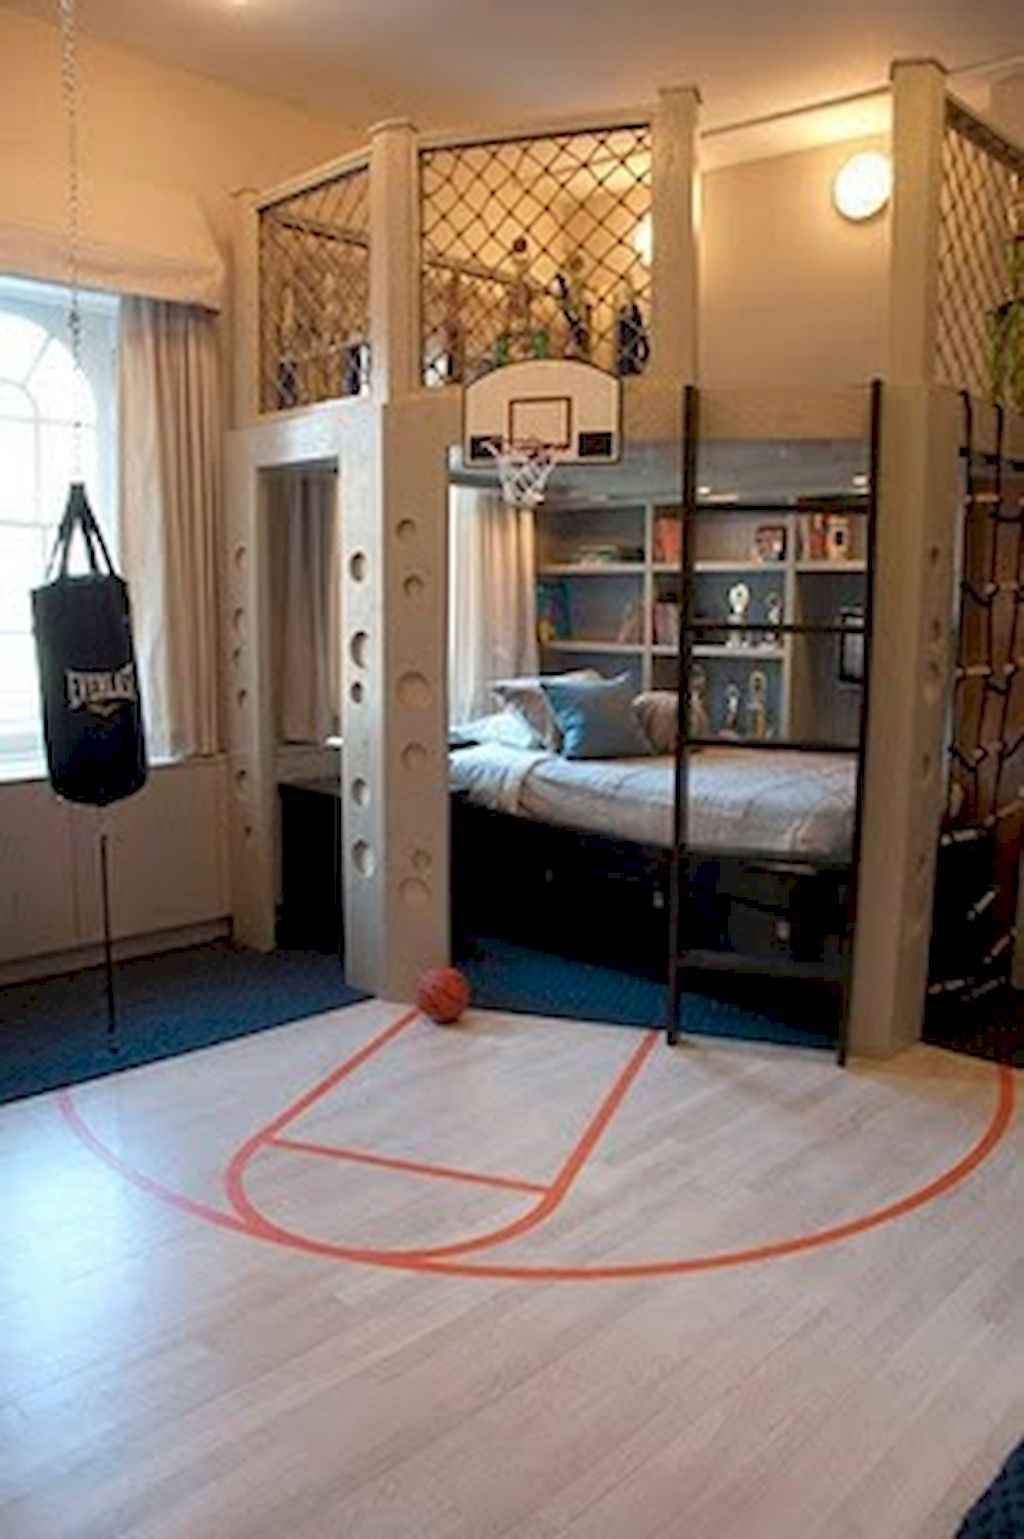 Simply ideas bedroom for kids (24)